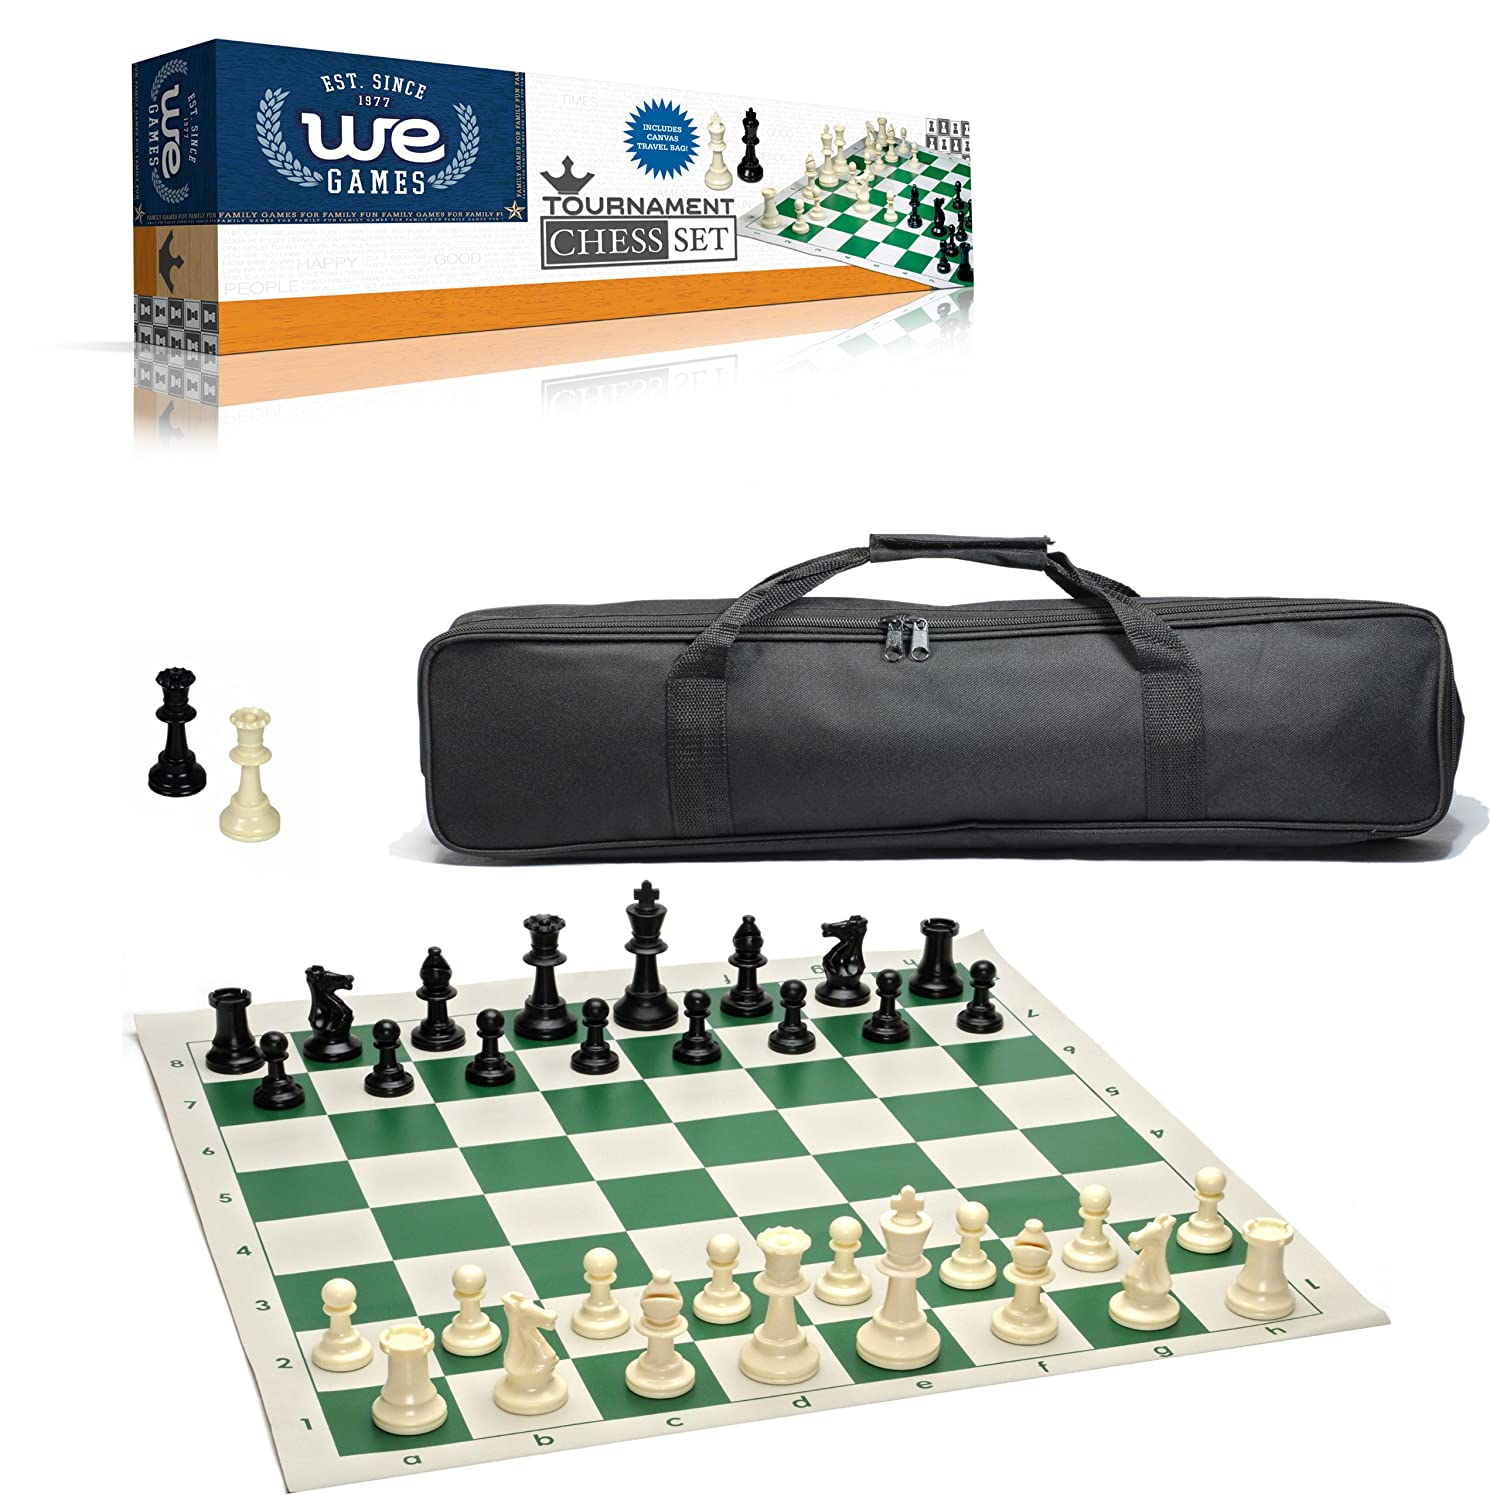 93b99c501b579 Amazon.com: WE Games Complete Tournament Chess Set – Plastic Chess Pieces  with Green Roll-up Chess Board and Travel Canvas Bag: Toys & Games